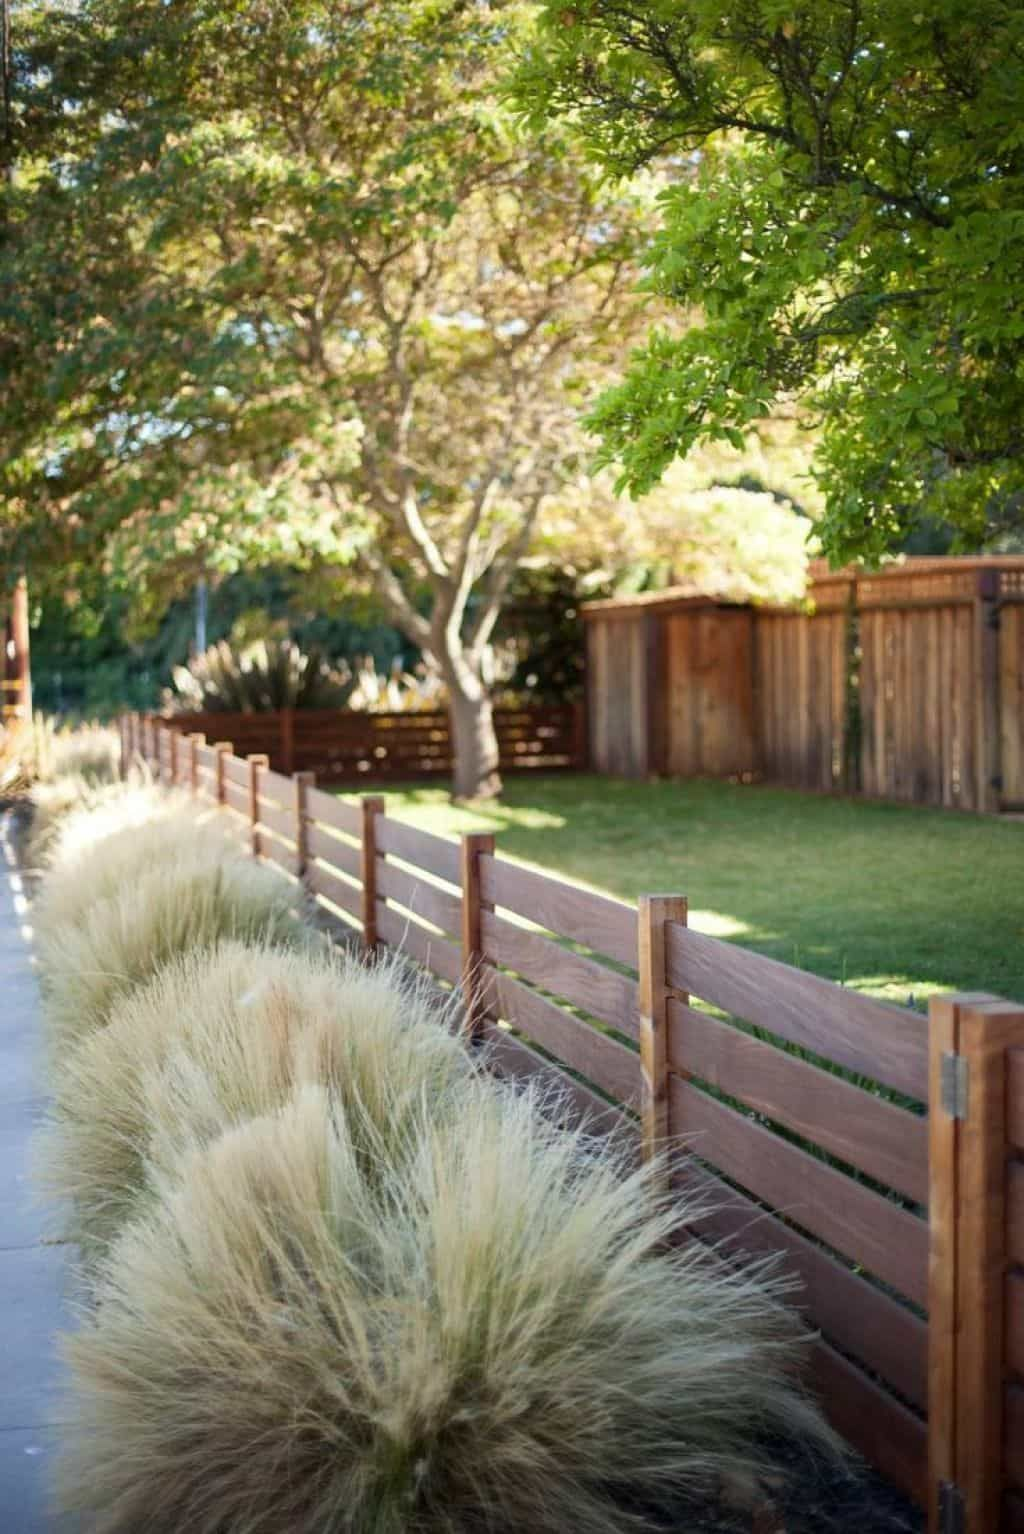 ways to installing garden fences fence design backyard on modern fence ideas highlighting your house with most shared privacy fence designs id=52117